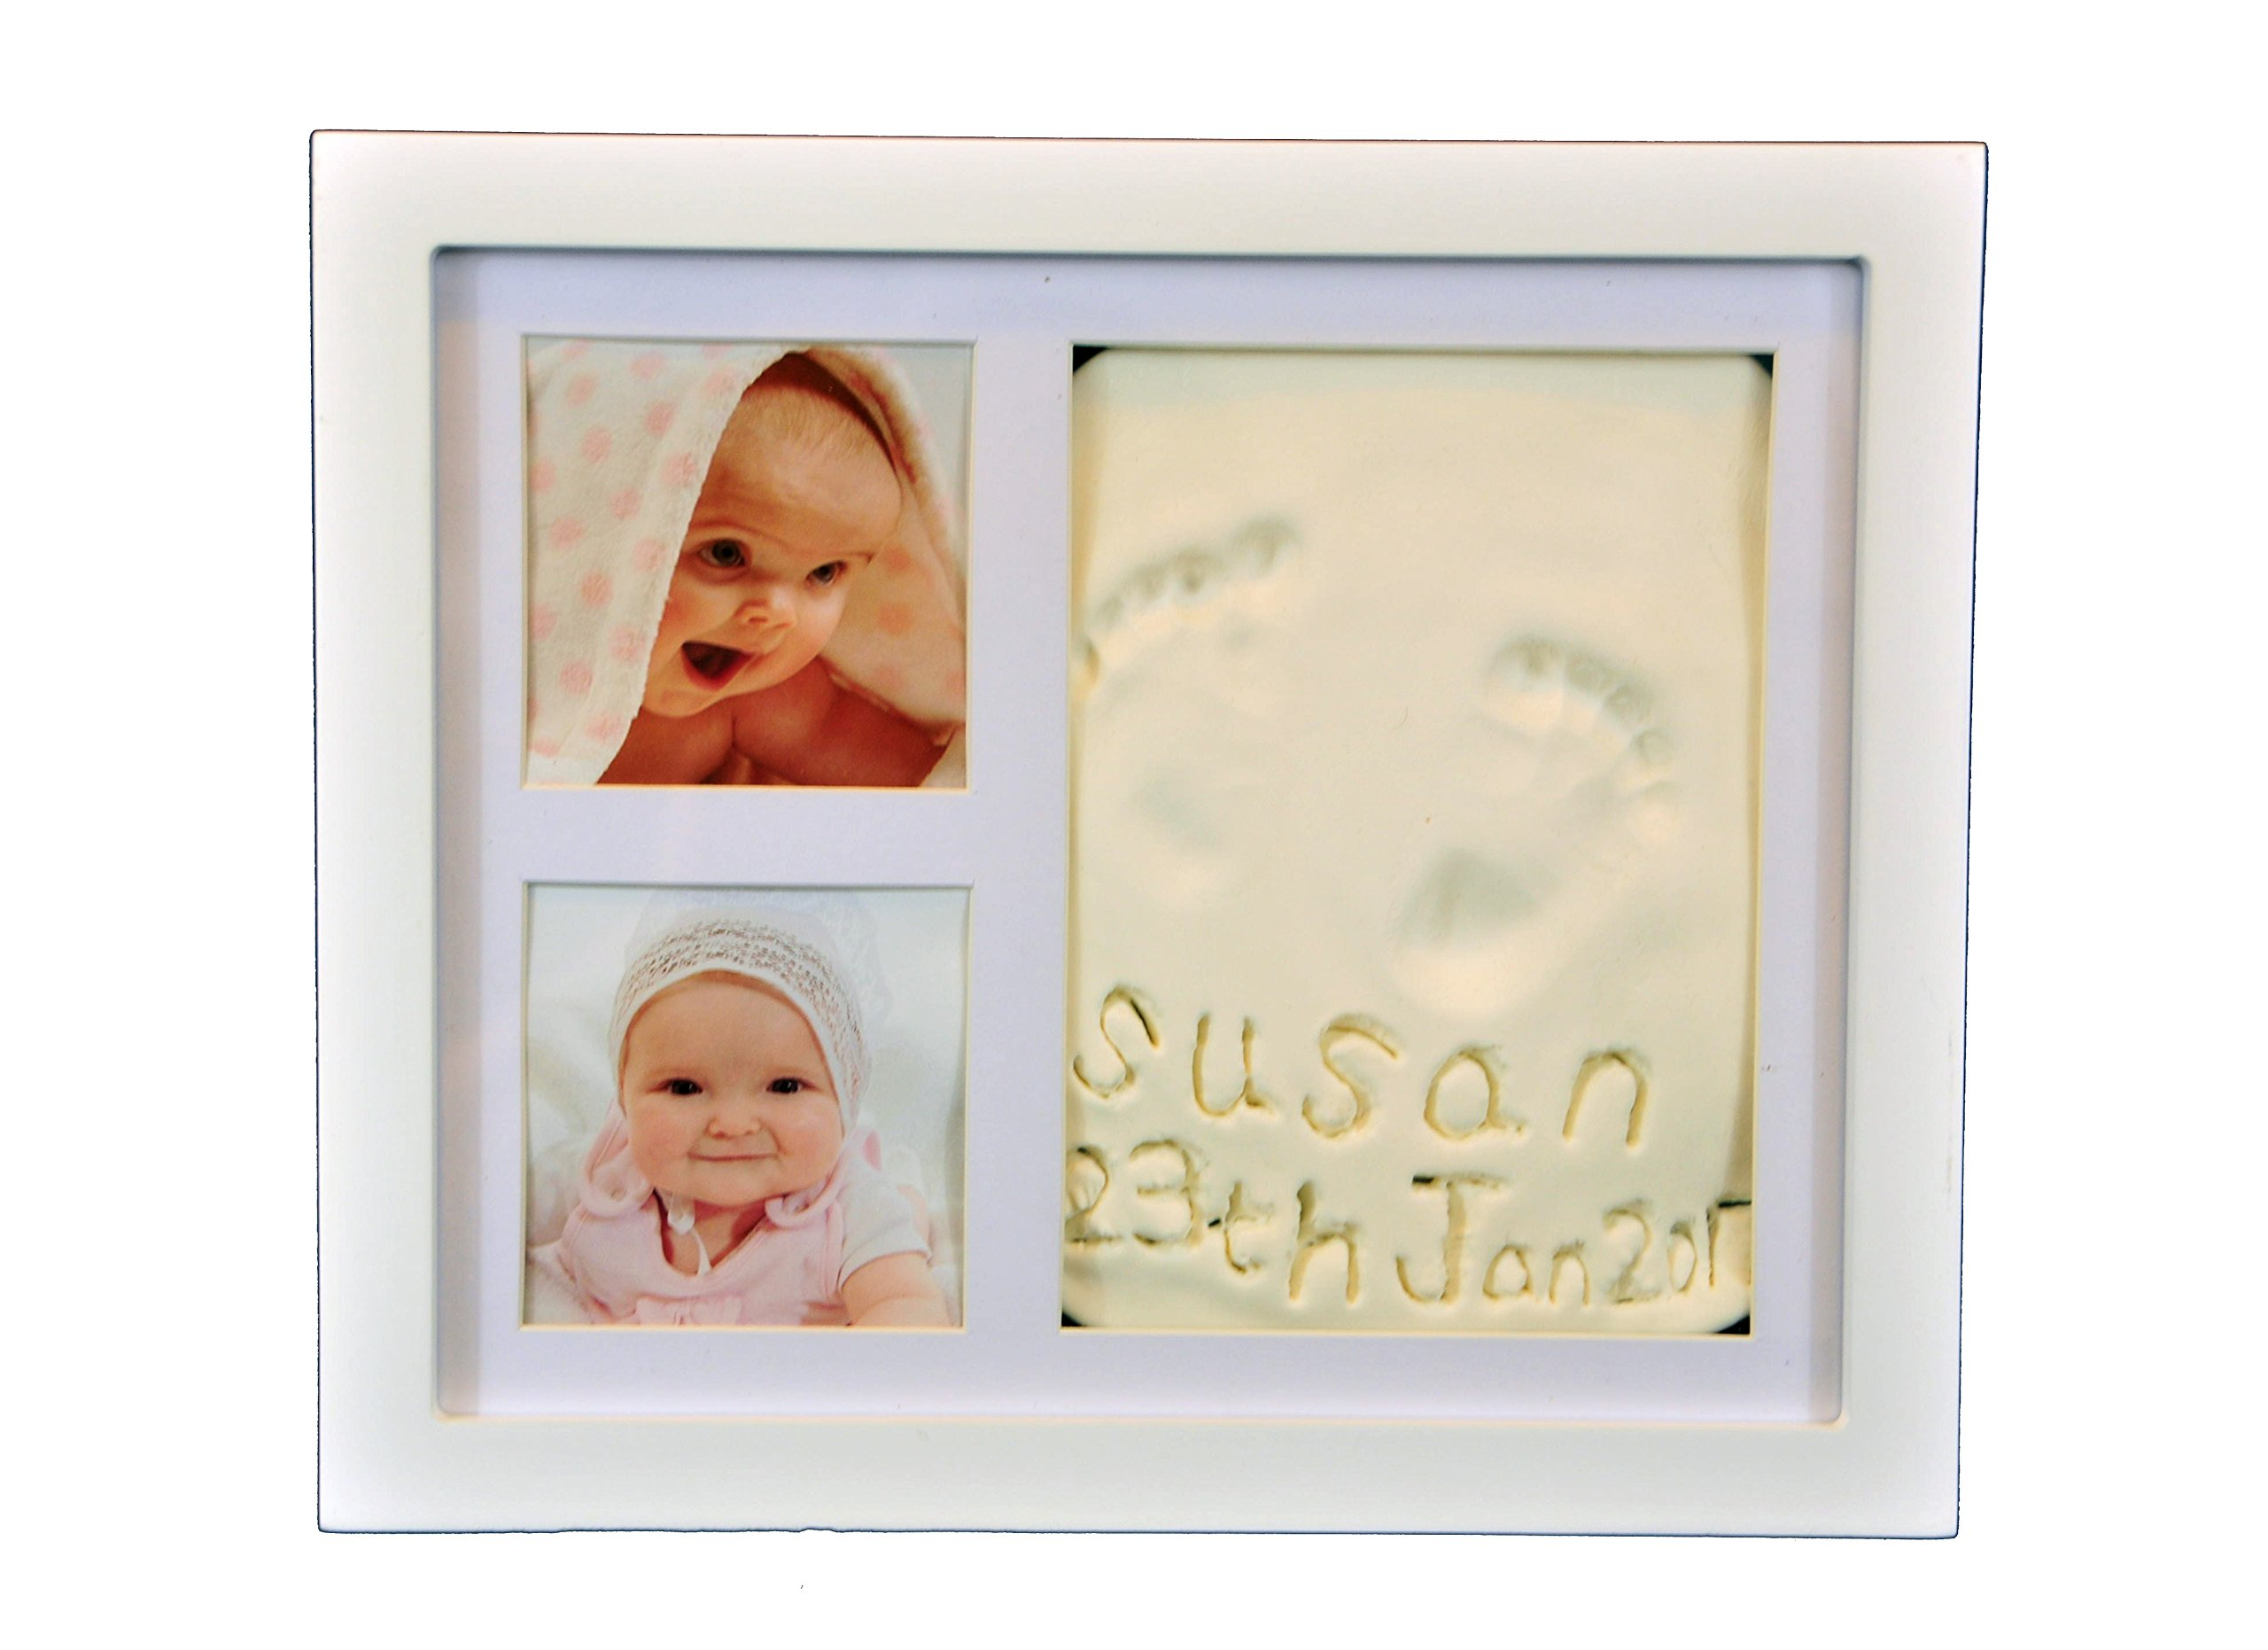 Beautiful Hand and Footprint Baby Frame, Its a Cool and Unique Baby Shower Gift, A Memorable Keepsake Baby Decoration That is a Great Baby Gift - with a Bonus Gift (White) by Cute Happy Baby